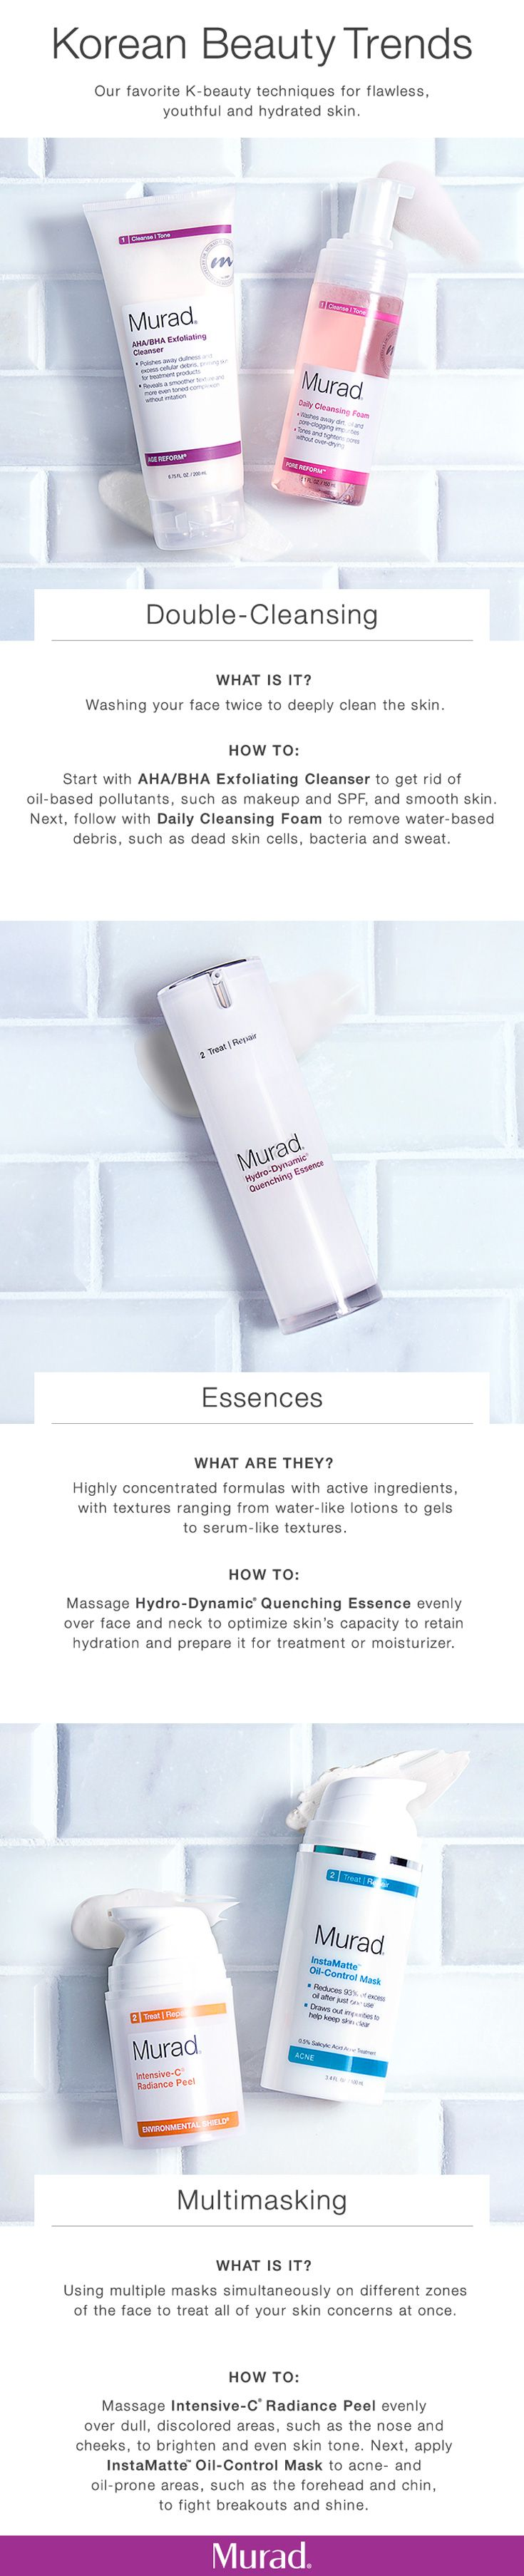 If you've read any skincare blogs or beauty magazines lately, you've probably come across articles on Korean skincare trends. Korean beauty, or K-beauty, is the new beauty movement that everyone's talking about and Murad has exactly what you need to jump start your K-beauty routine. Start by adding these three trends to your daily skincare regimen to achieve flawless, youthful, and hydrated skin: Double-Cleansing, Essences, and Multimasking.